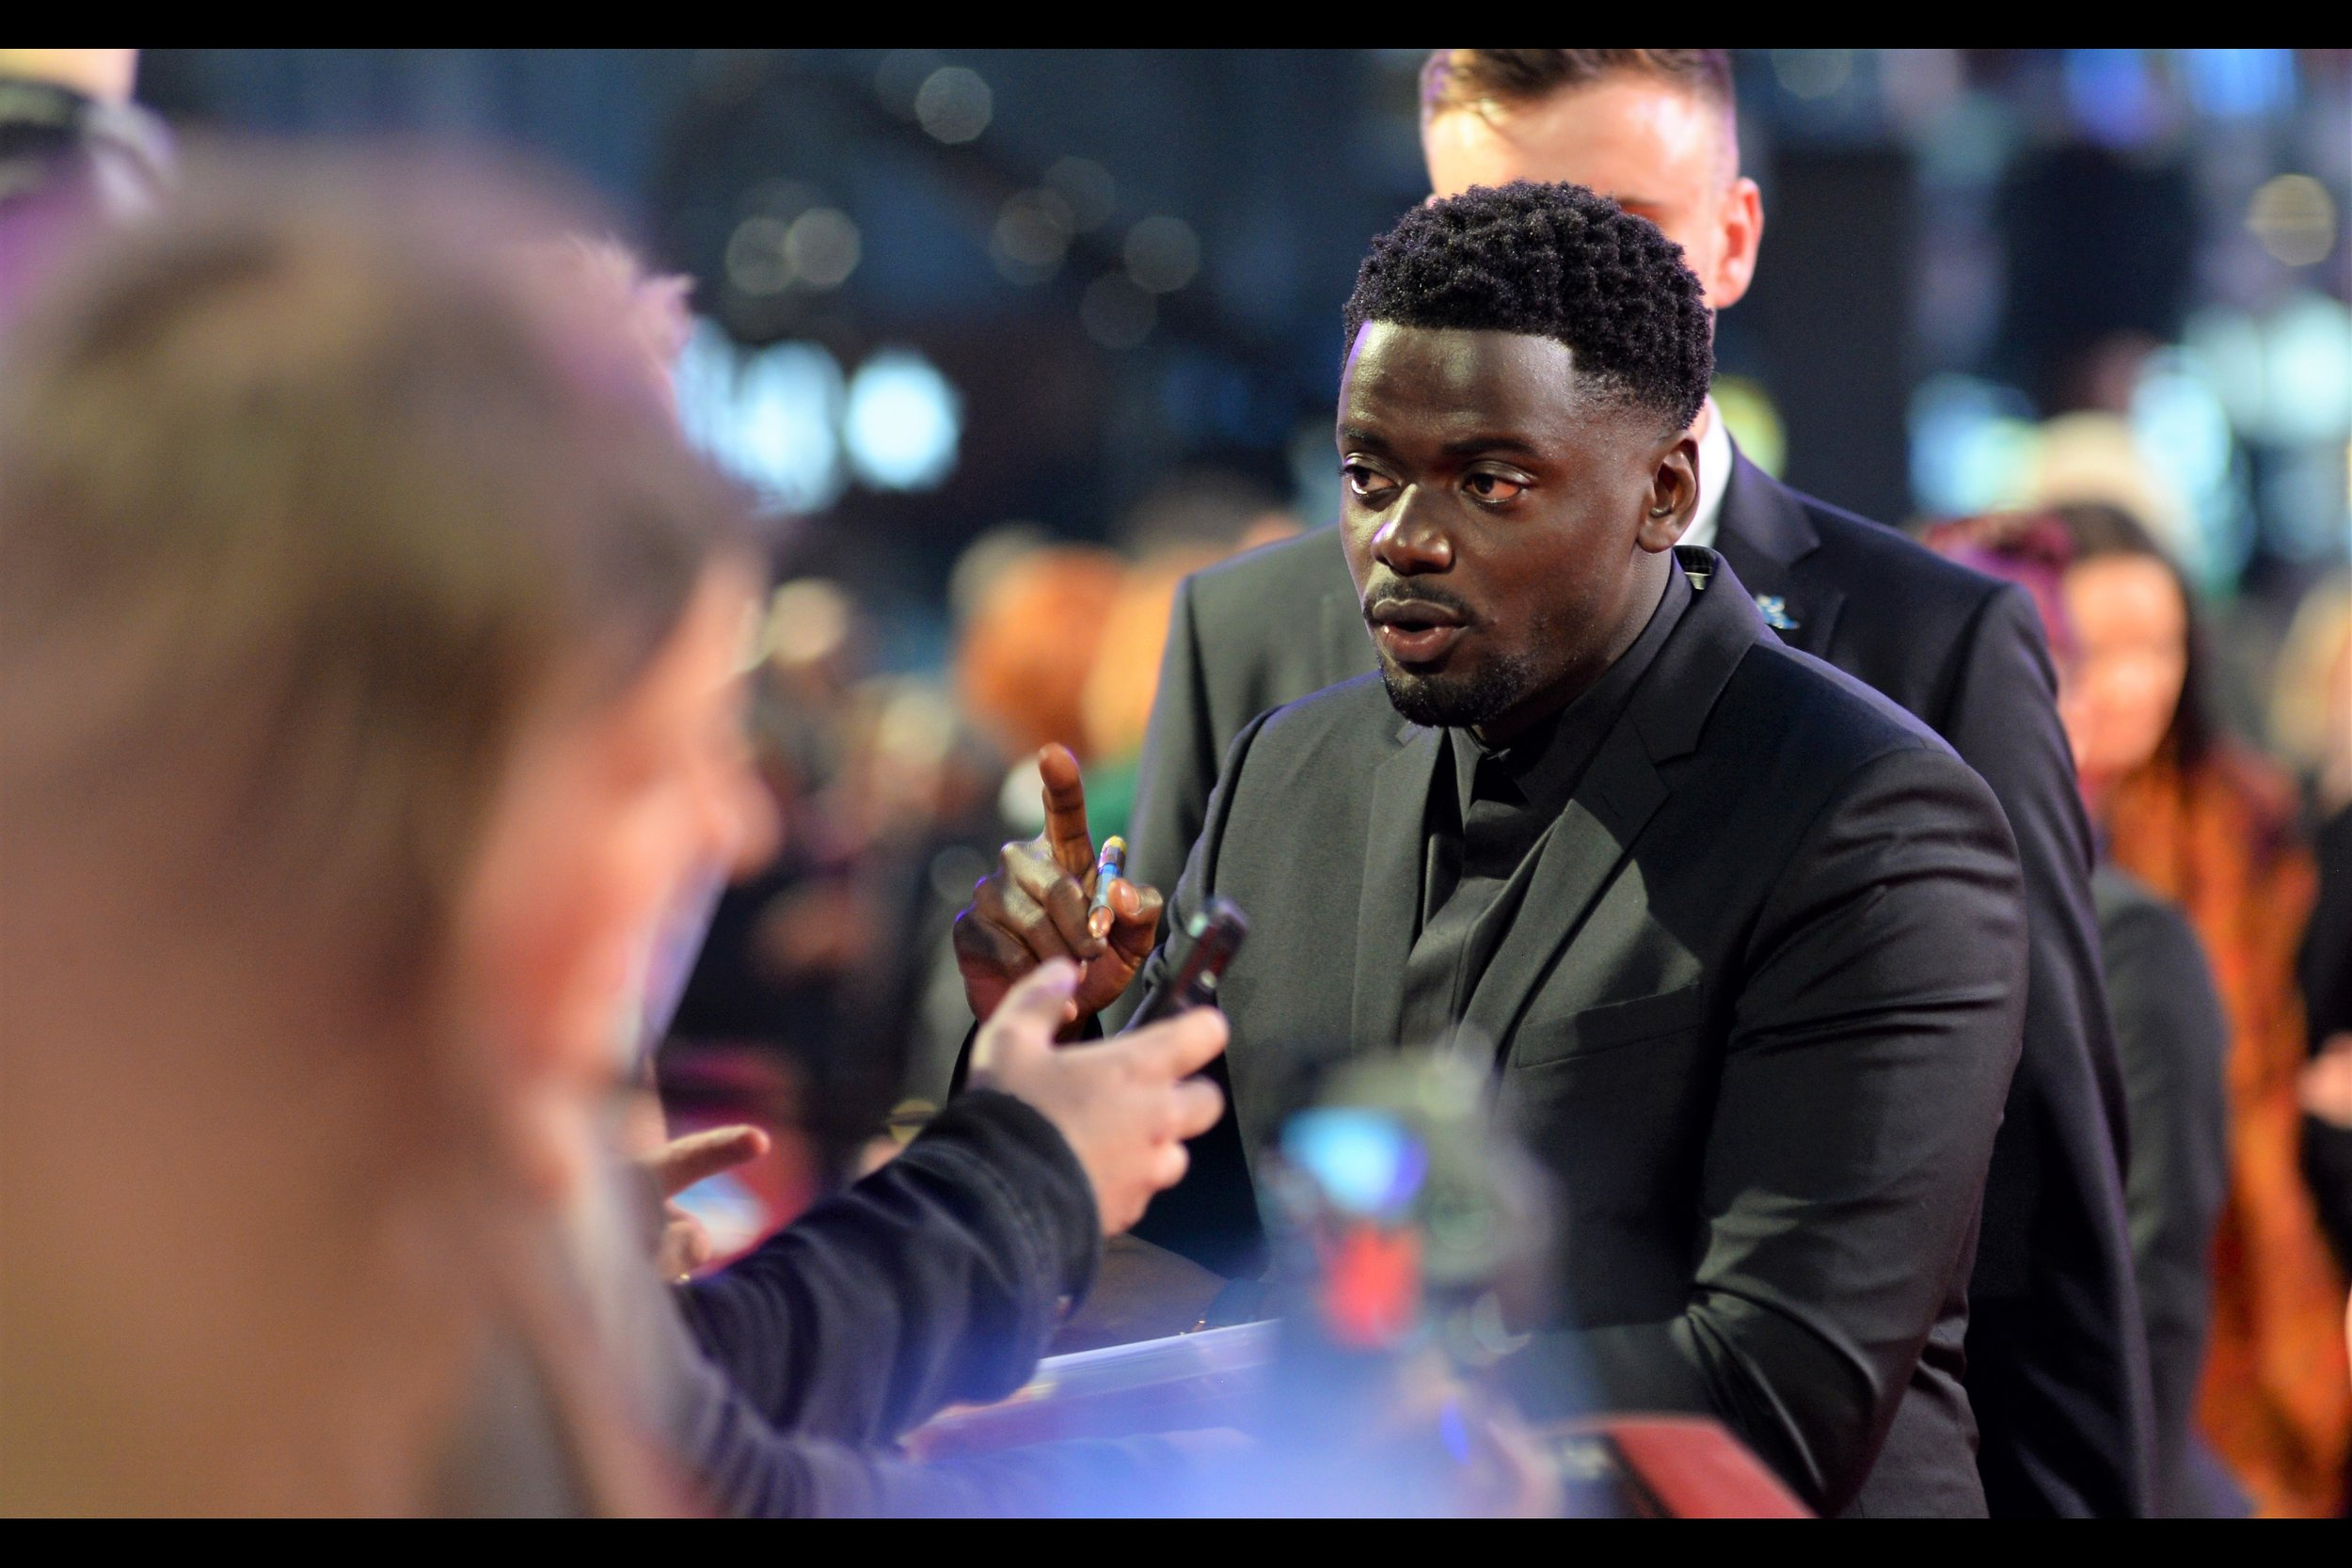 In better news, Daniel Kaluuya has elected to brave the rampant autograph dealers and their probably infinite supply of 8x10 glossy photographs.